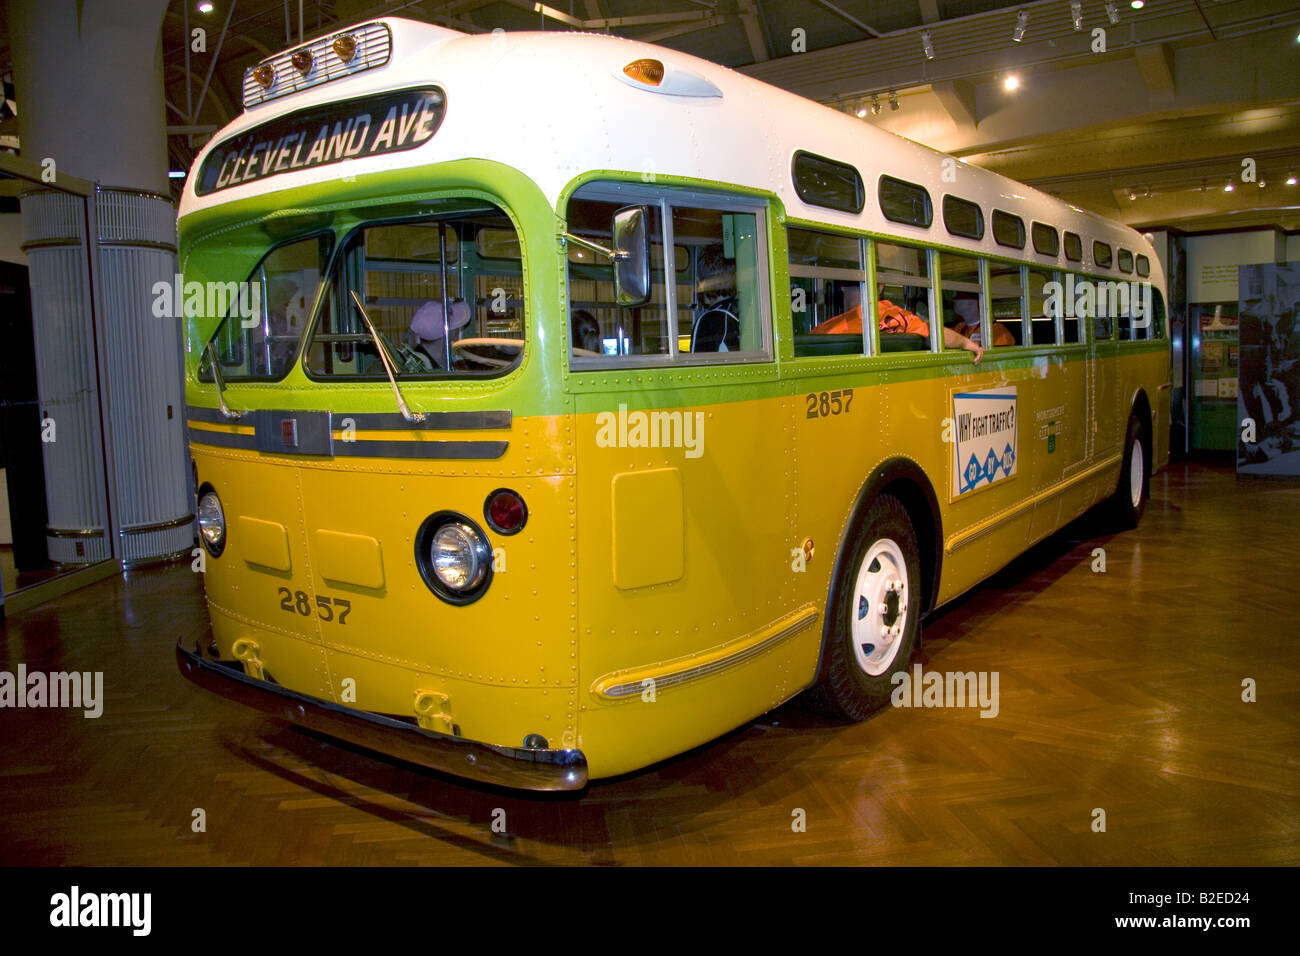 The Rosa Parks bus on display at The Henry Ford Museum in Dearborn Michigan - Stock Image